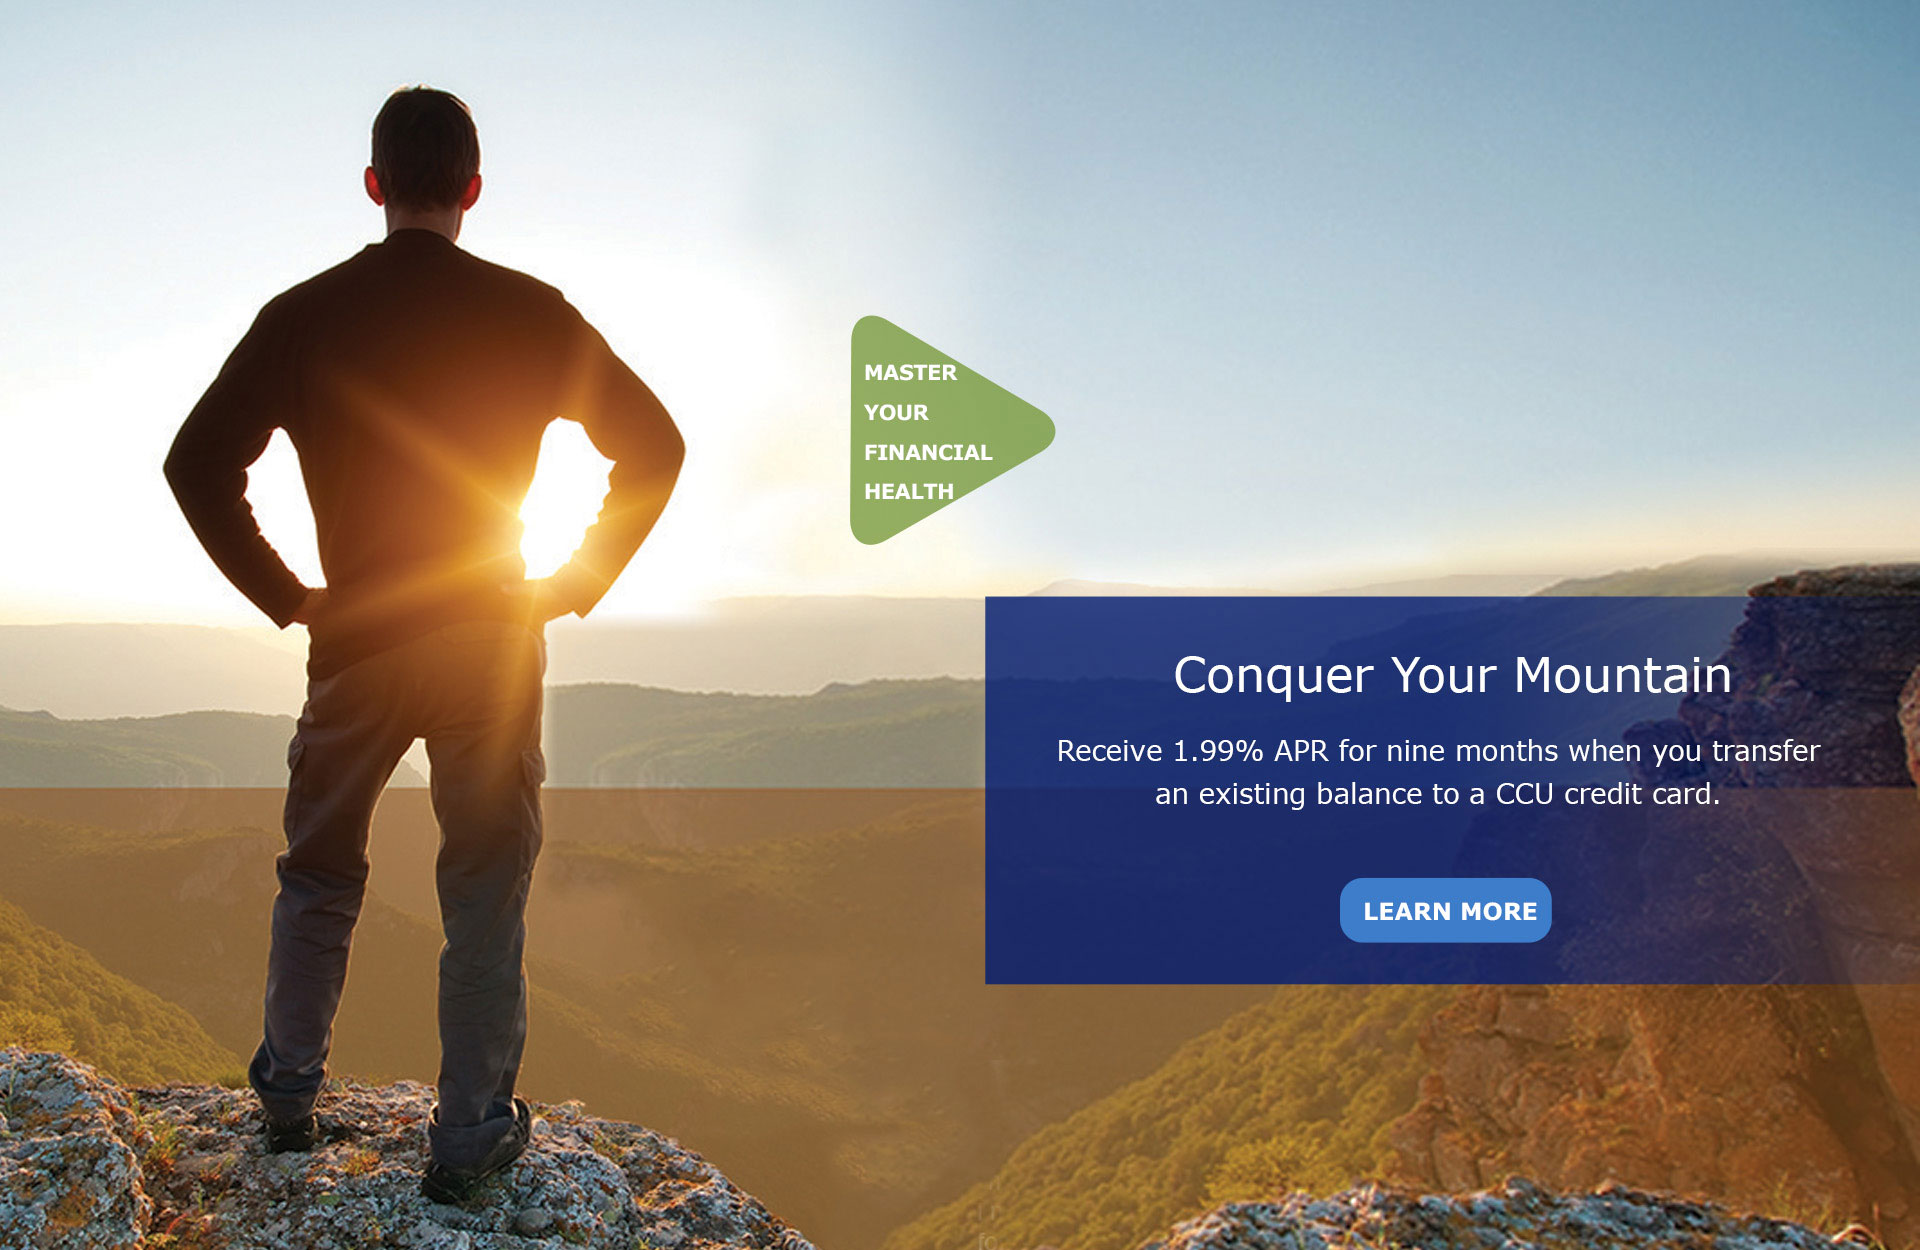 Master your financial health with CCU. Conquer your mountain by transferring an existing balance to a CCU credit card